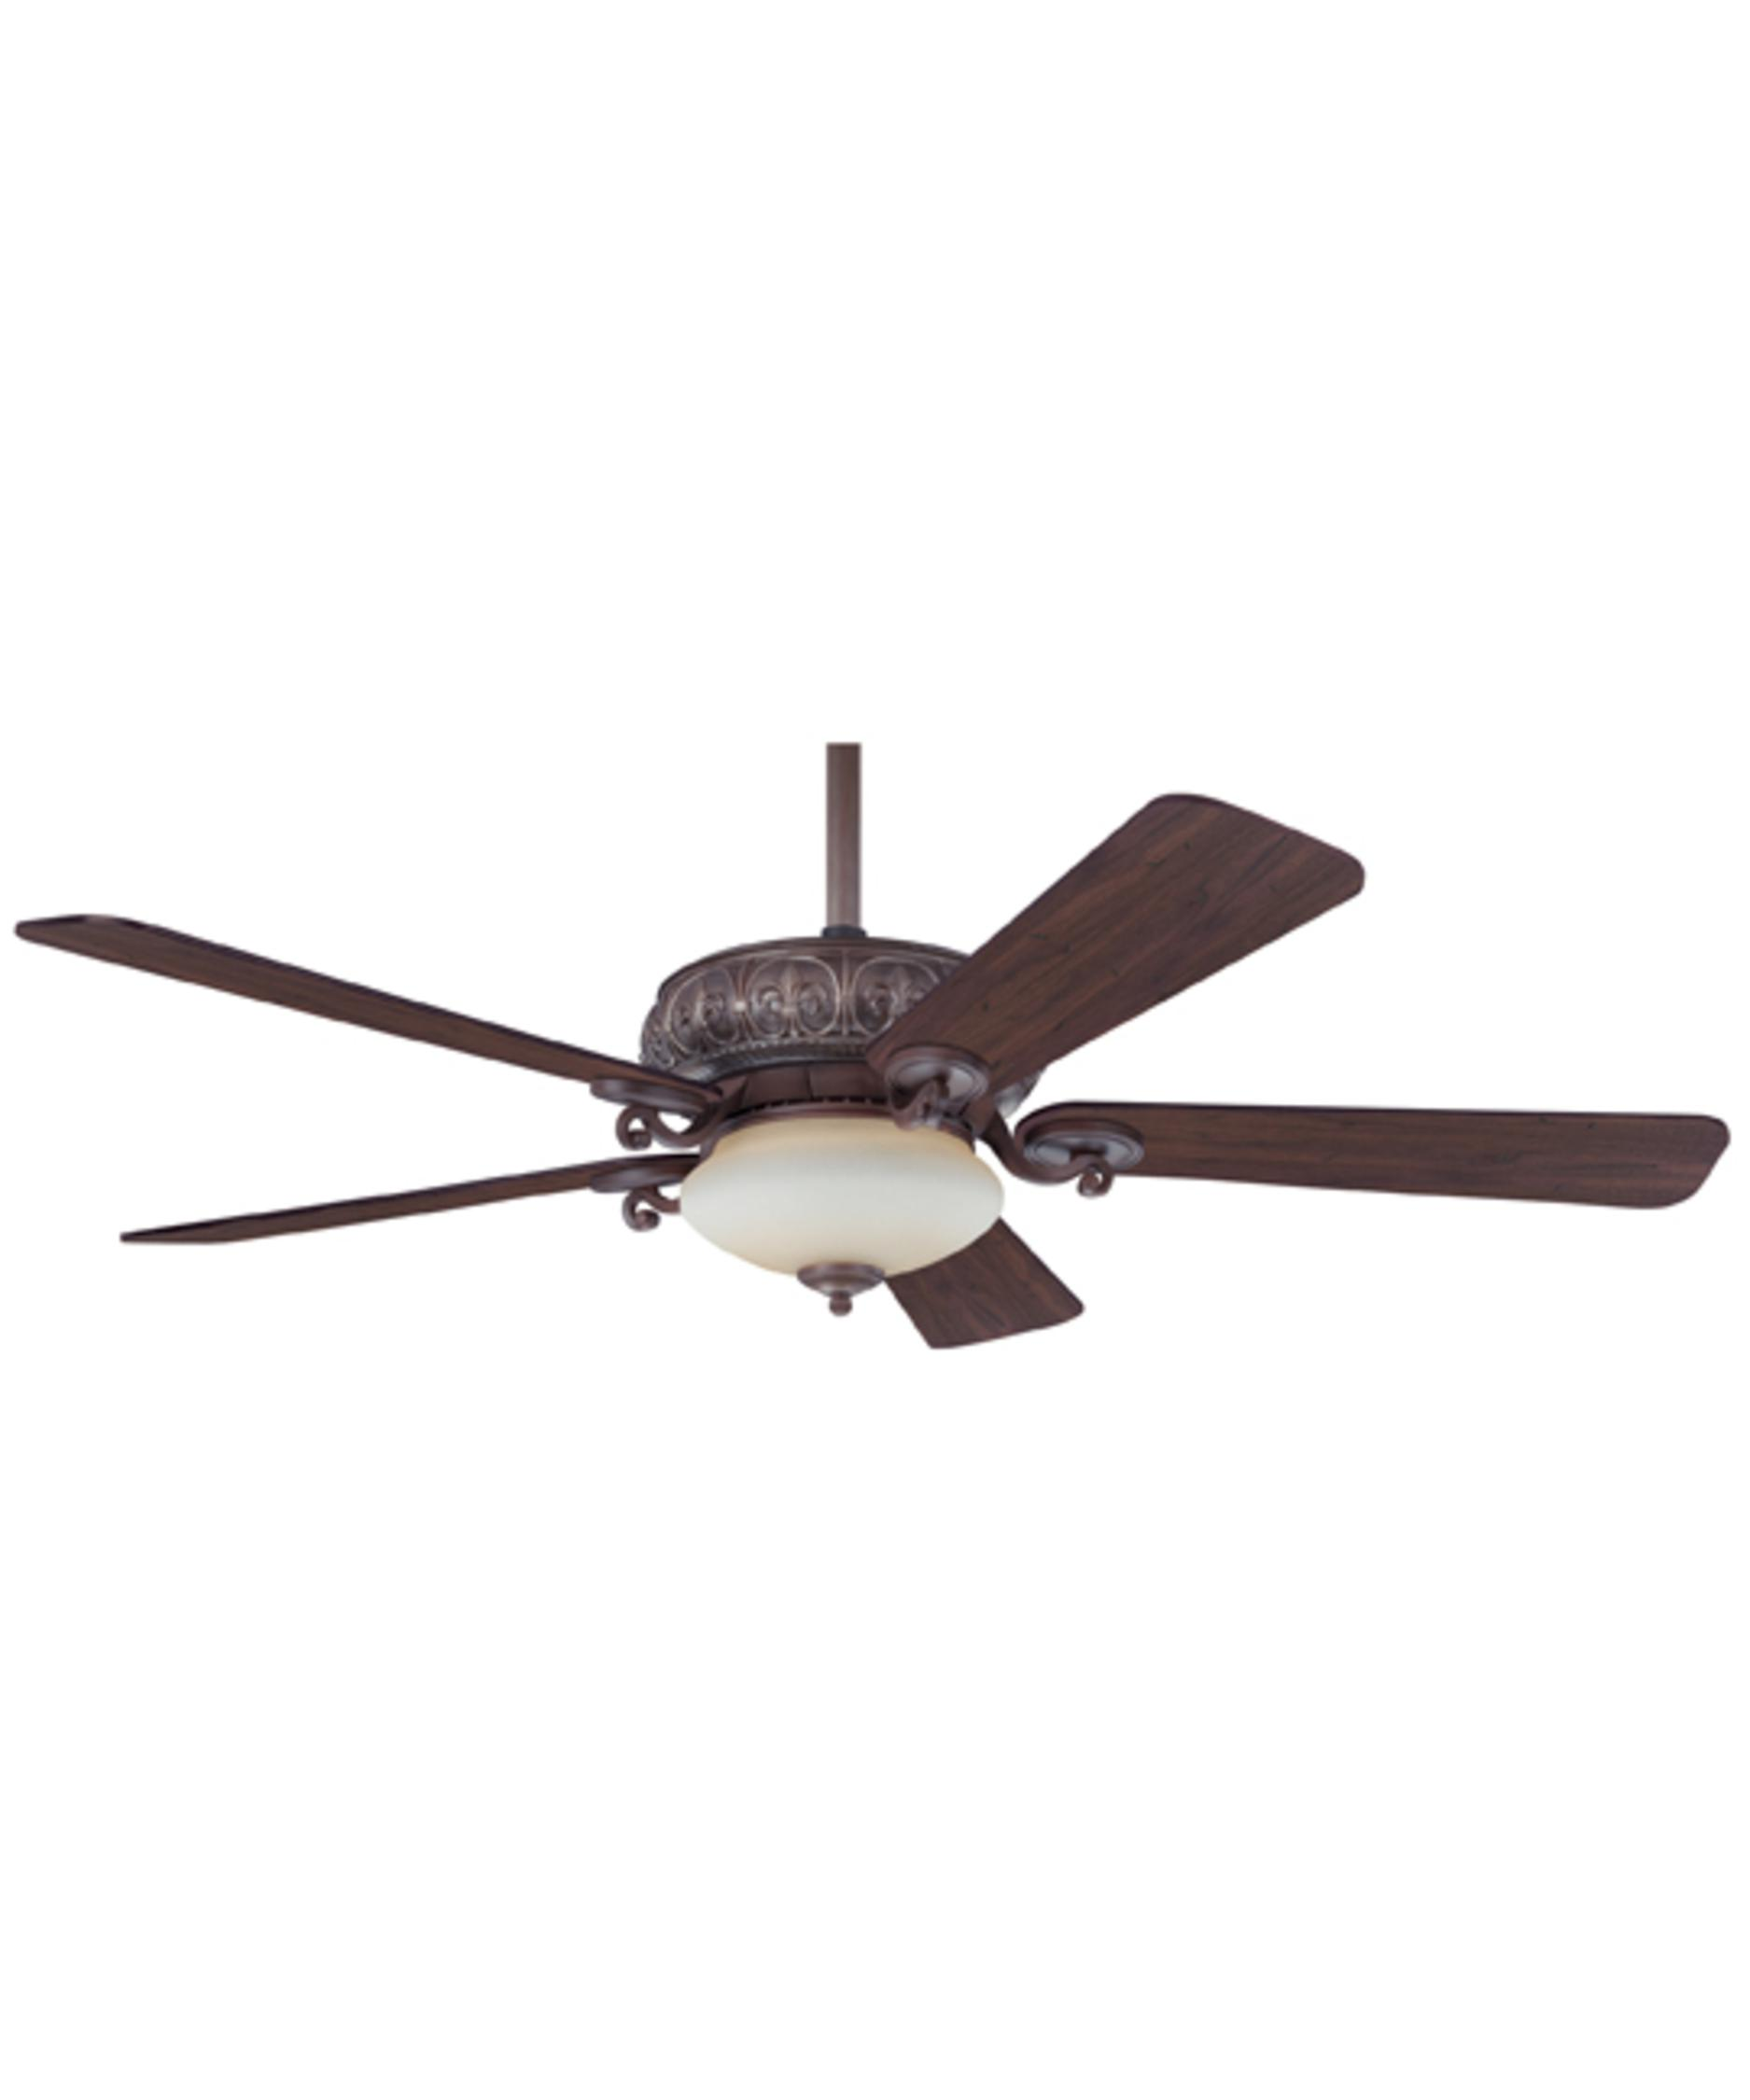 Murray Feiss Ceiling Fan Light Kit: Hunter Fan 25903 Villa 52 Inch Ceiling Fan With Light Kit